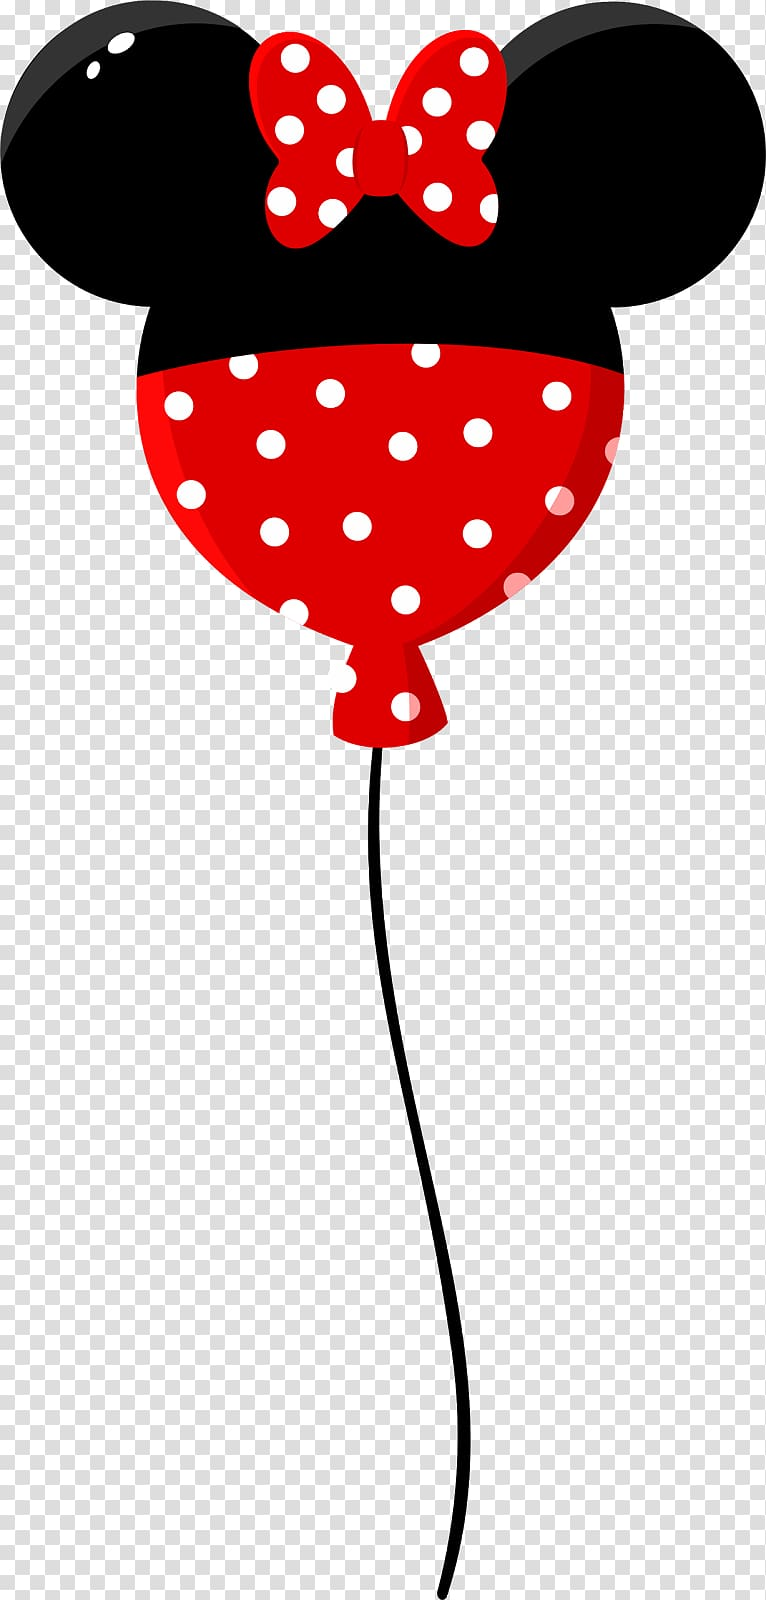 Black and red Minnie Mouse balloon, Mickey Mouse Minnie.